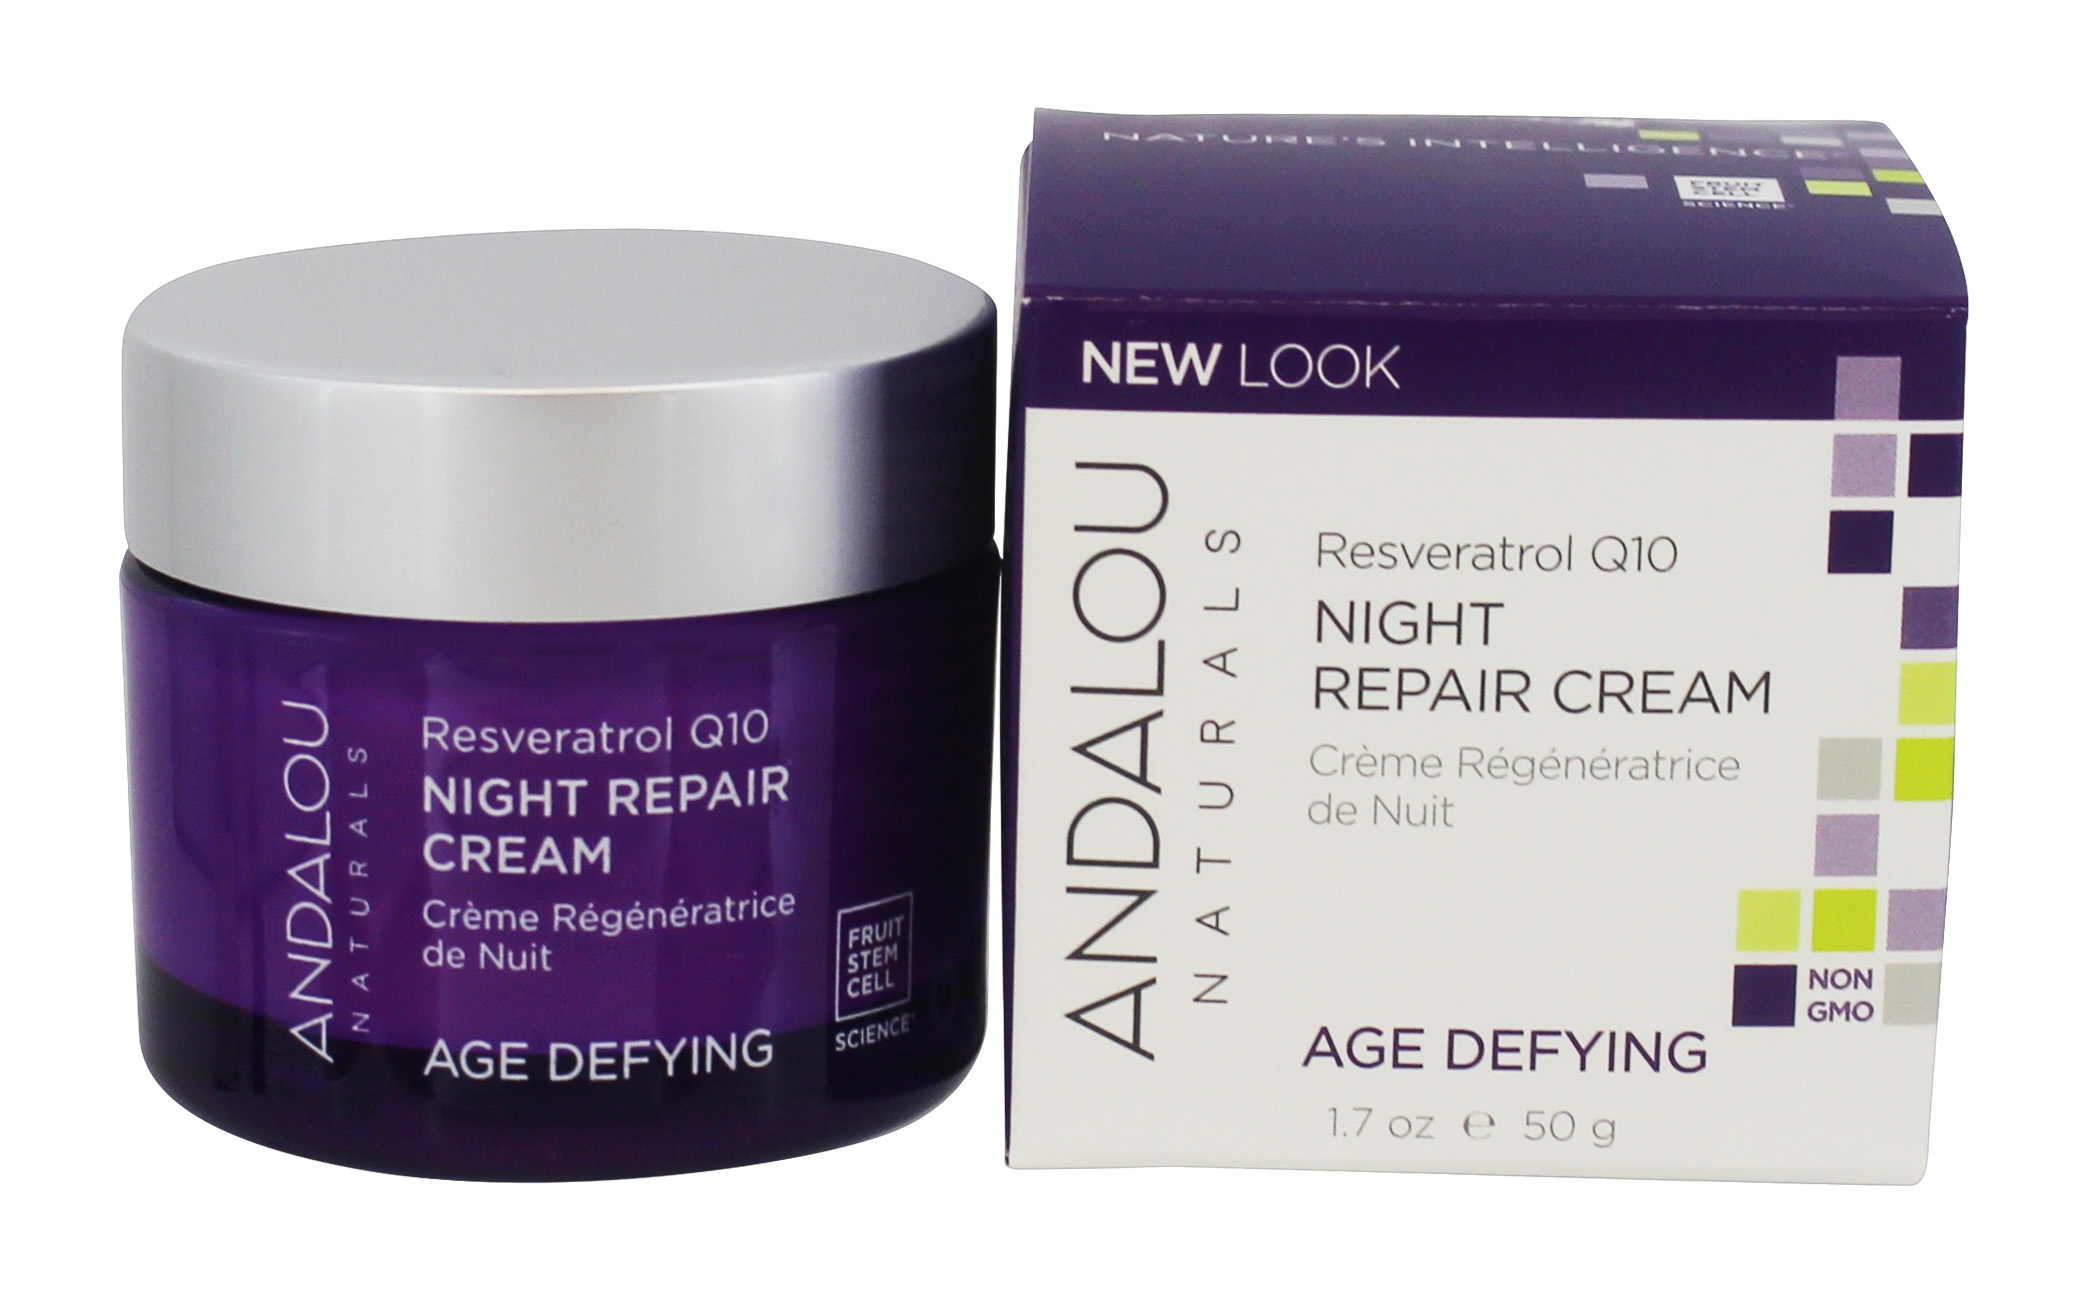 Argan Stem Cell Recovery Cream Pod by andalou naturals #5